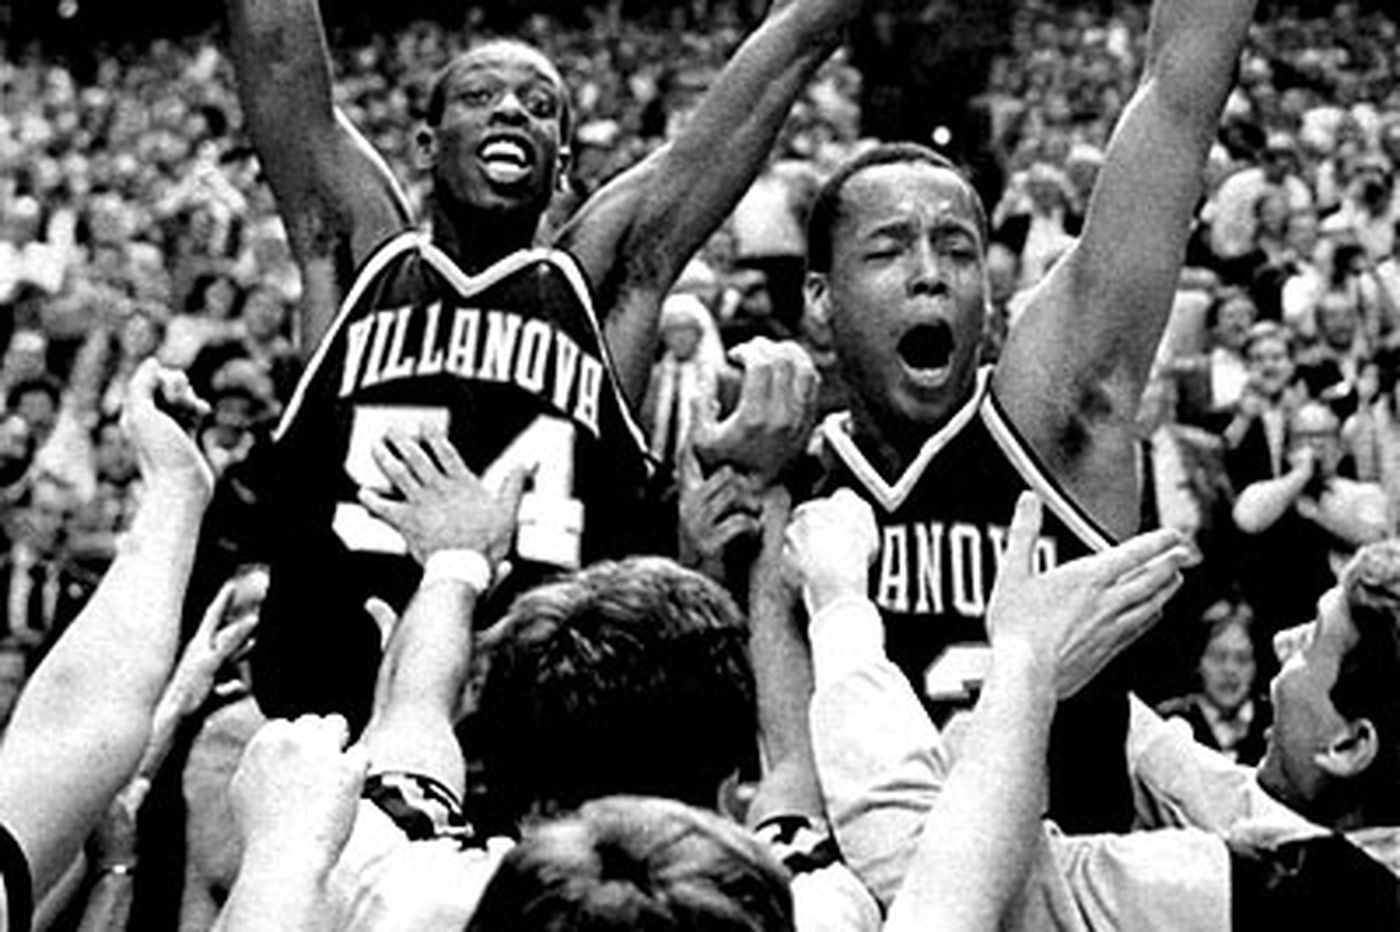 The 1985 Wildcats: Where are the champs now?